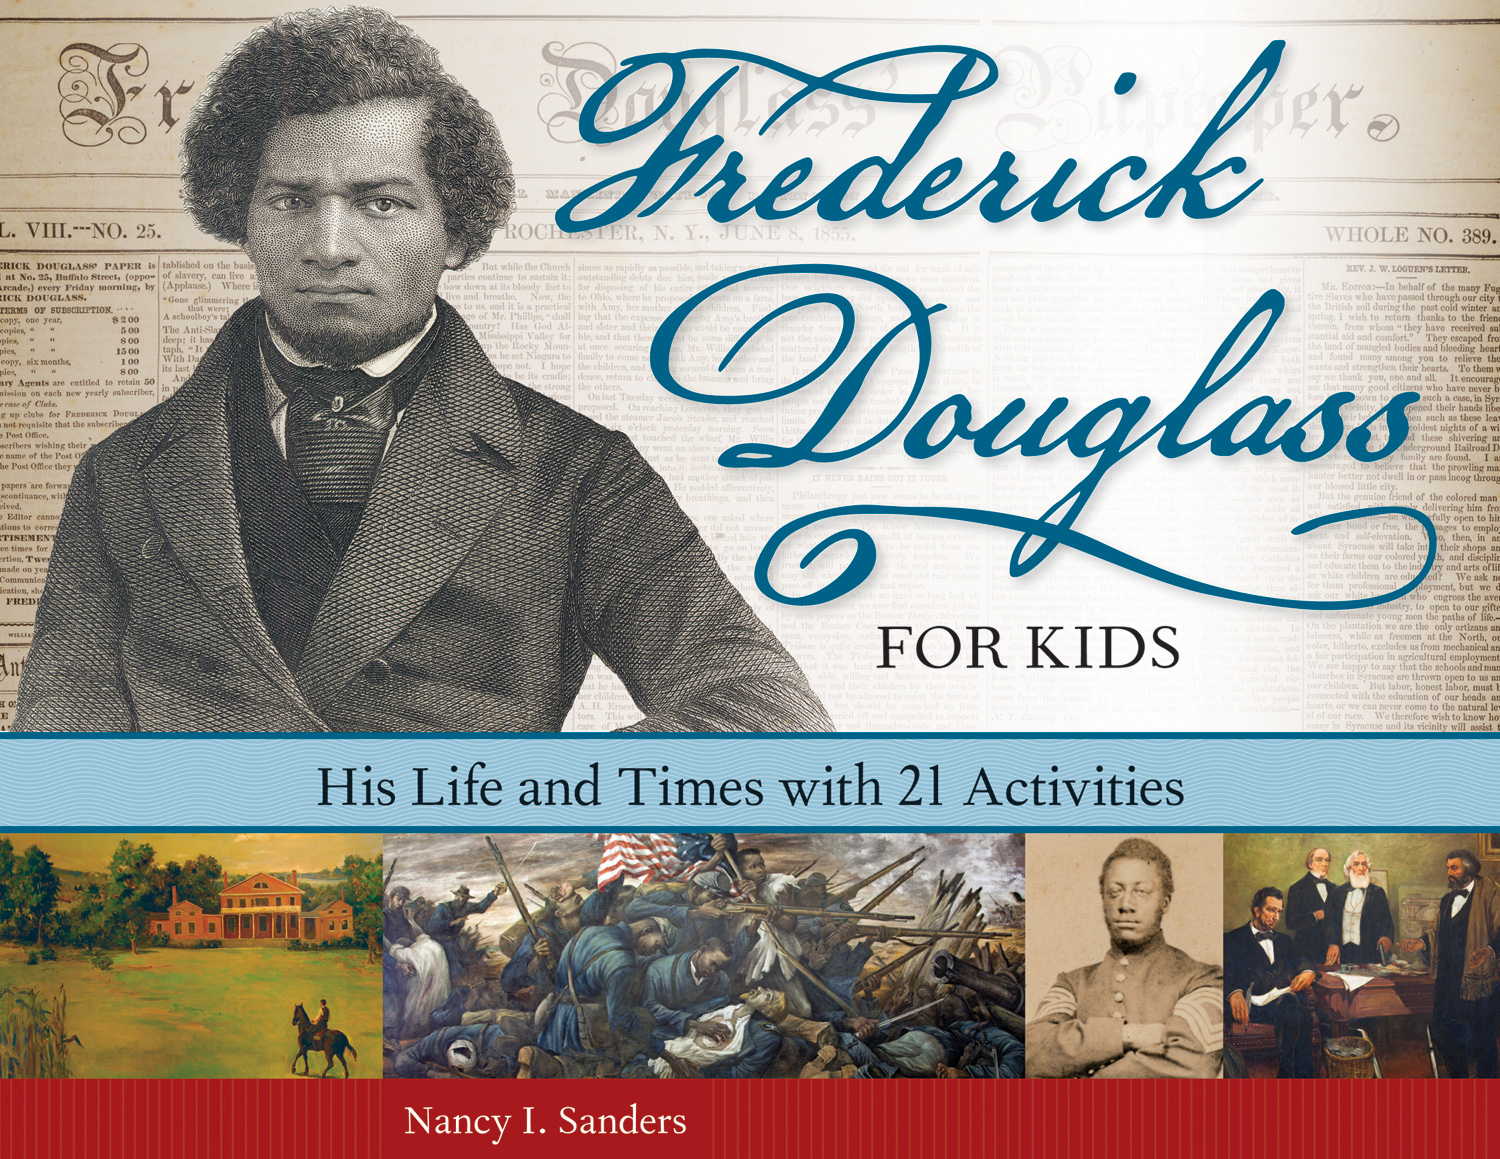 Frederick Douglass for Kids by Nancy I. Sanders